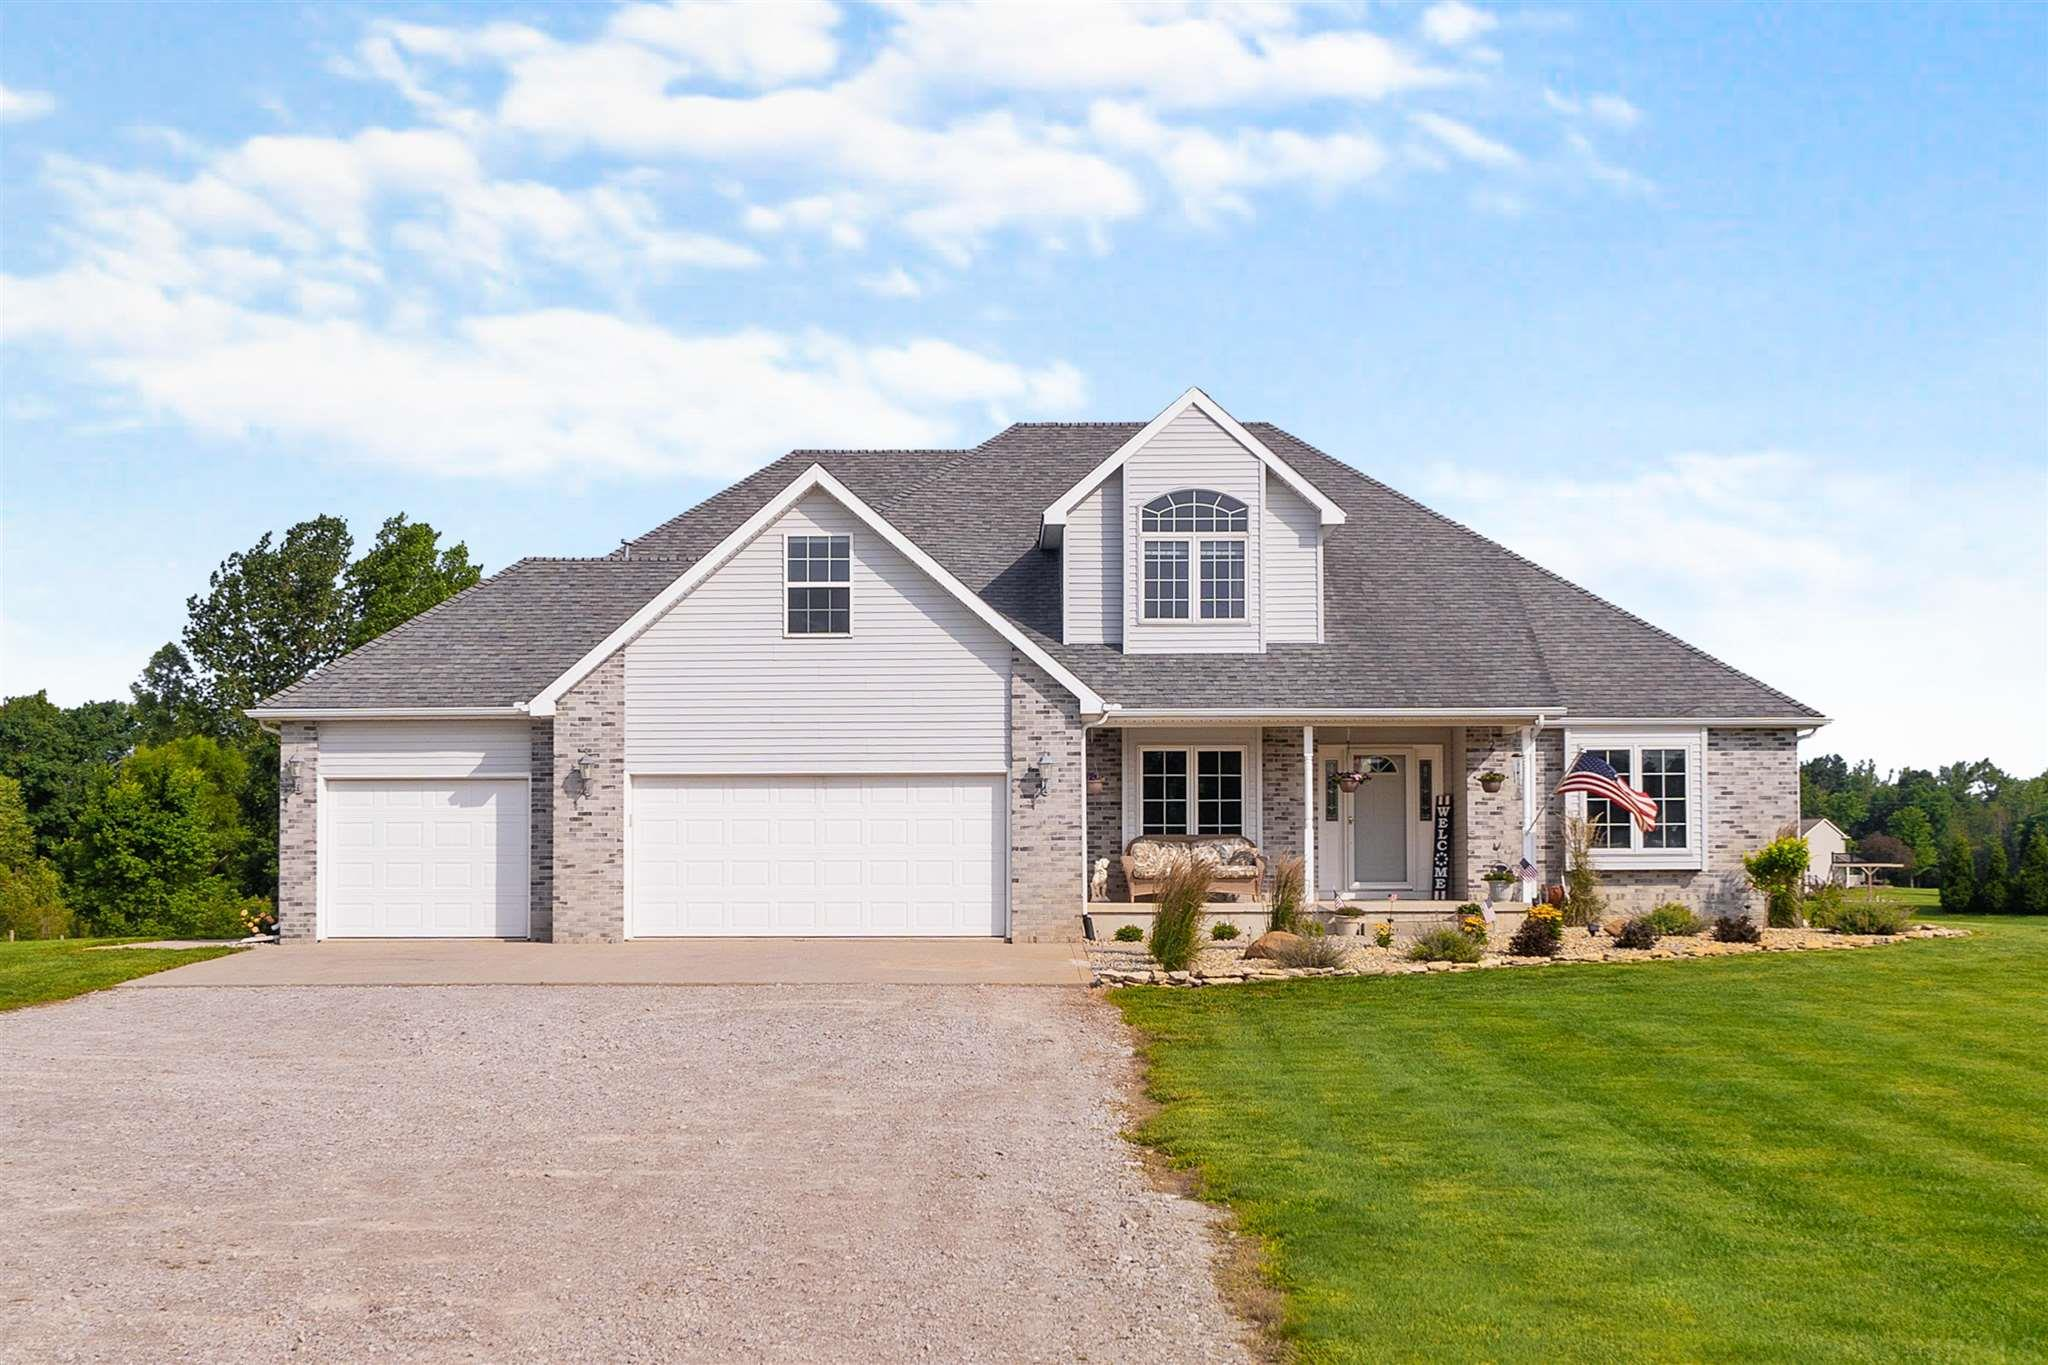 Live your best life on this sprawling 14+ Acre slice of paradise. This property boasts a long, beautiful winding driveway just southwest of Garrett with an easy commute to Fort Wayne. This custom built, two-story on a finished basement features 5 bedrooms (Could be 7 if the office were repurposed) and 3.5 bathrooms with a formal dining room, office, loft area, and a full kitchenette in the basement (basement could be used as a mother in-law suite). Entire interior was recently professionally repainted, as well as carpets professionally cleaned throughout. Outdoor space includes a fabulous 30X40 outbuilding with dual garage doors & with gorgeous interchangeable horse stalls, massive MULTIPLE horse pens/fencing on the property, as well as multiple recreational spaces. All major, stainless steel kitchen appliances are included in the sale. Master bedroom and laundry are both on the main level while the home highlights a split bedroom floor plan and a three-car garage with tall ceilings. Three sided fireplace between the main living space and dining nook. The home also has a fireplace in the basement. Approximately 5 or more Acres are currently tilled/farmed and are income producing. Survey & floor plan on file. Call your agent and schedule your showing today!